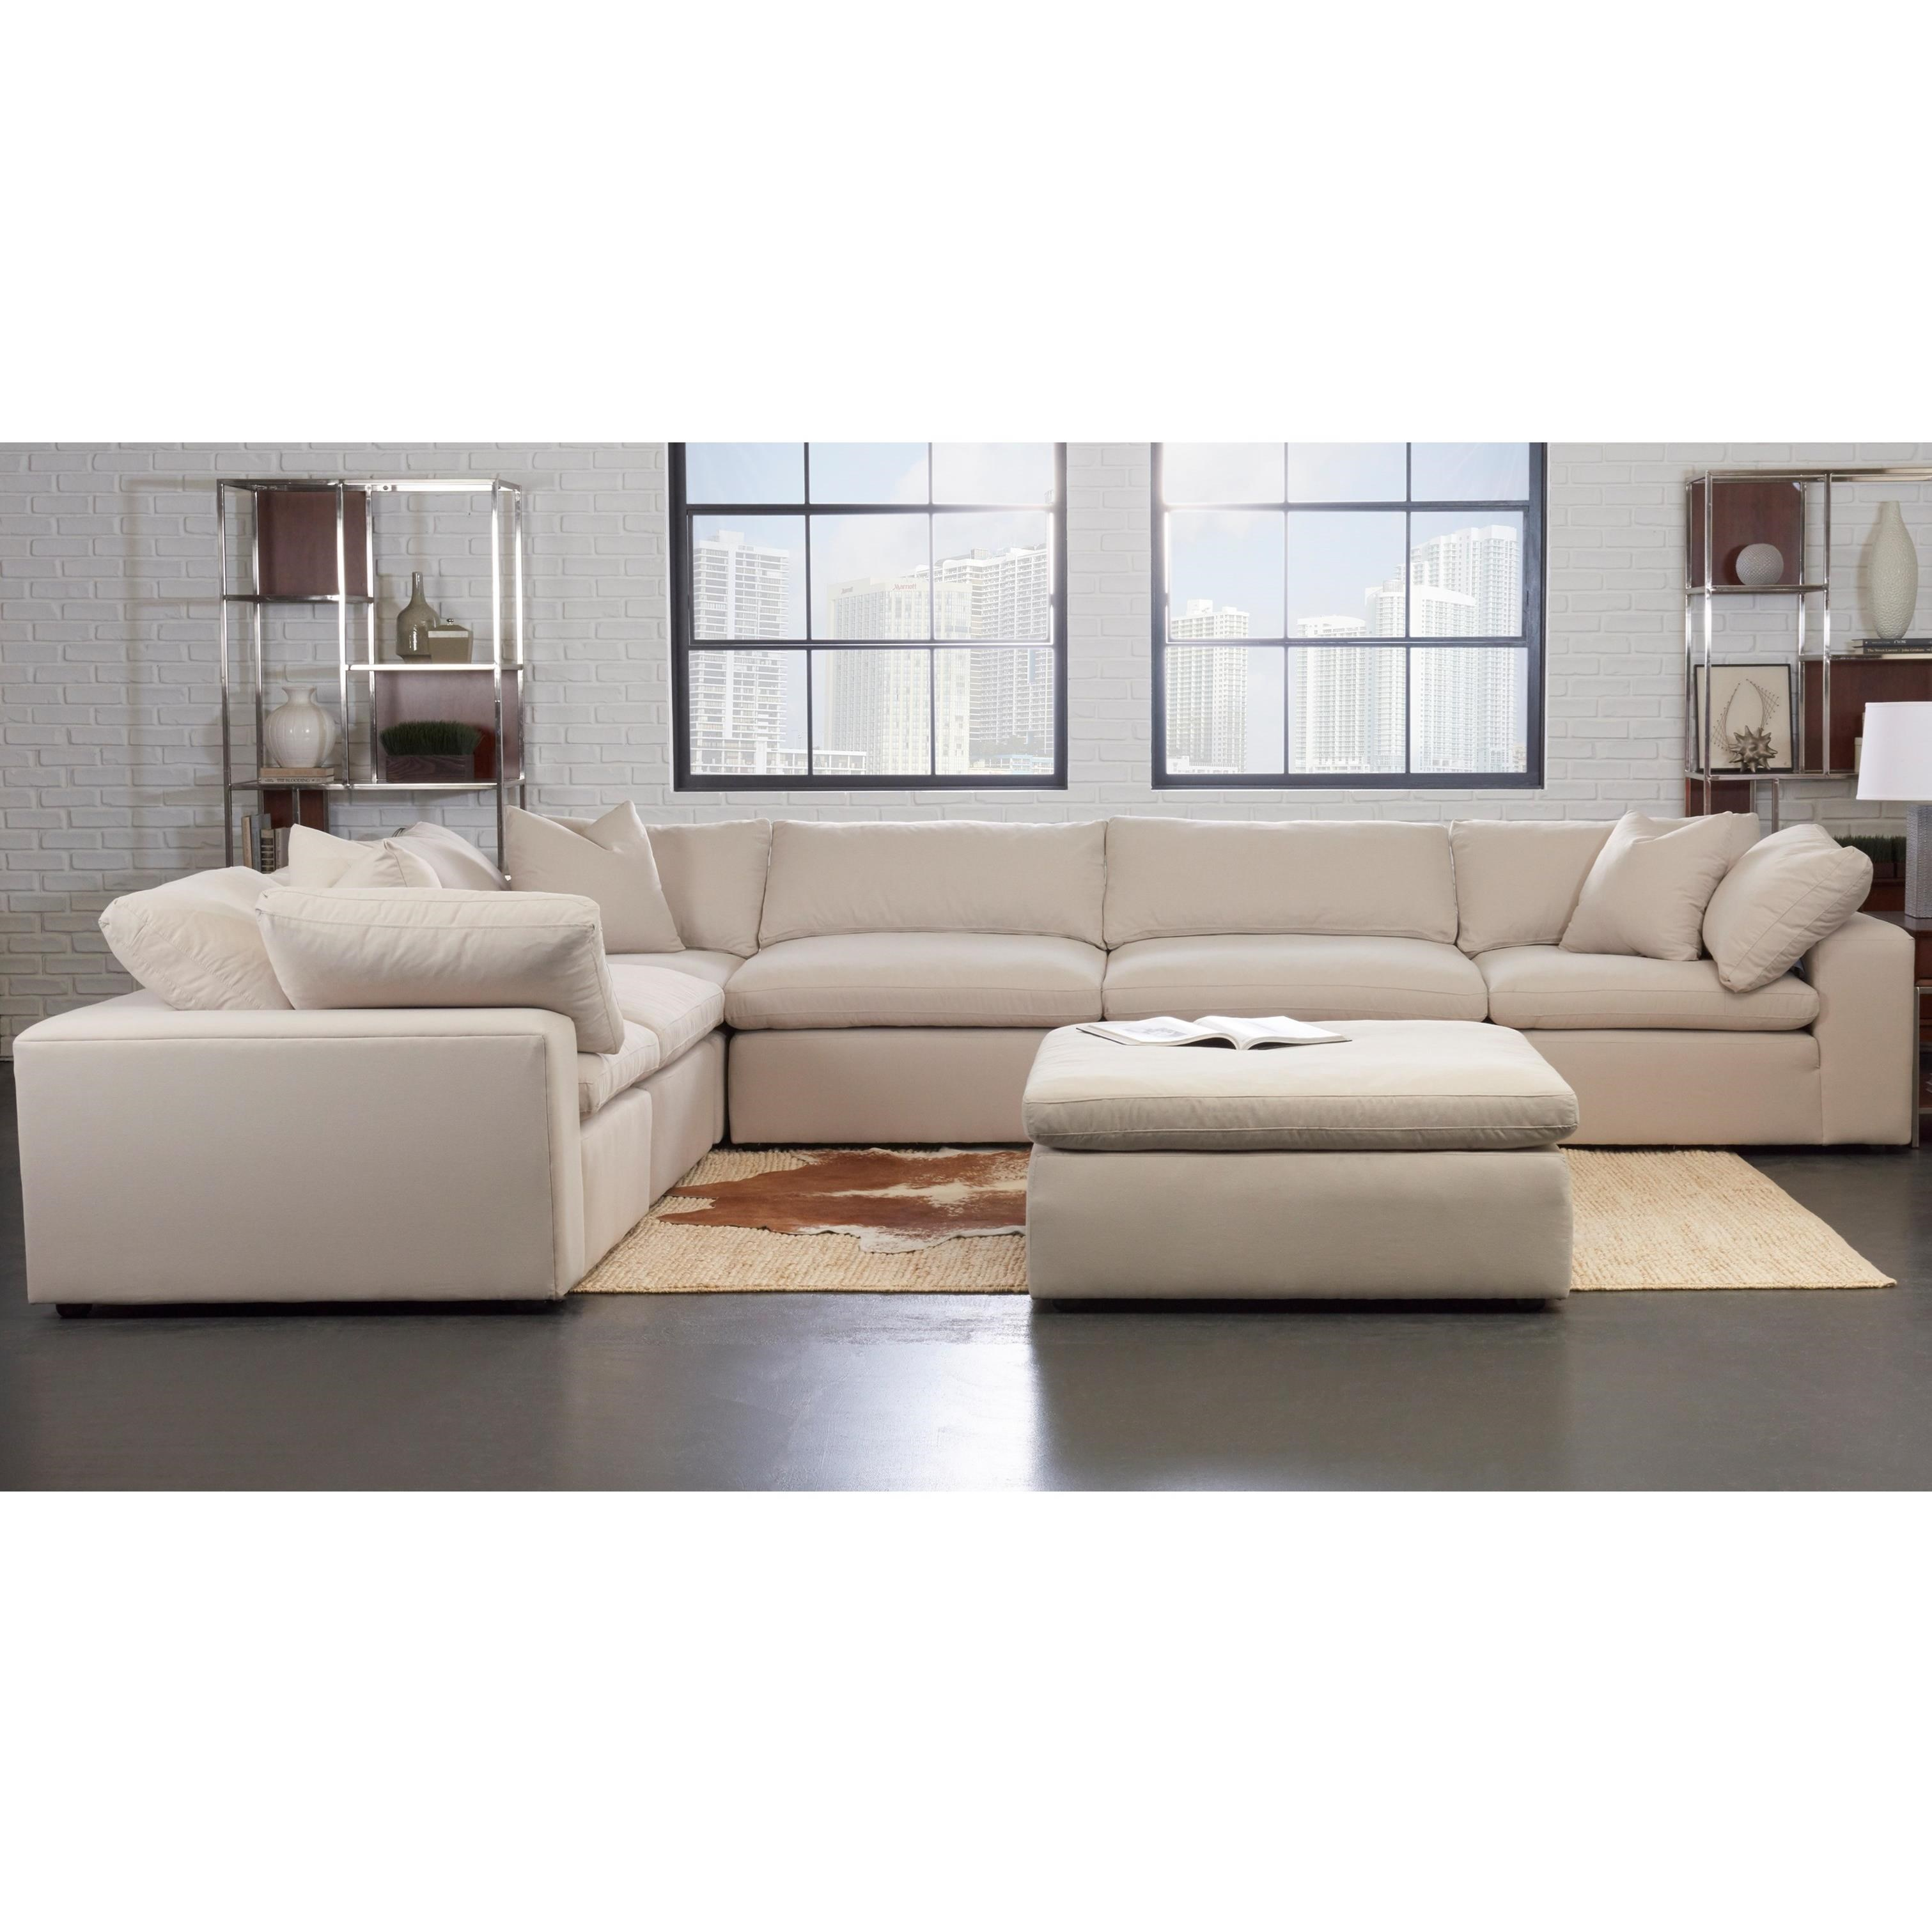 Modular Furniture Sofa: Klaussner Monterey Contemporary 6 Pc Modular Sectional